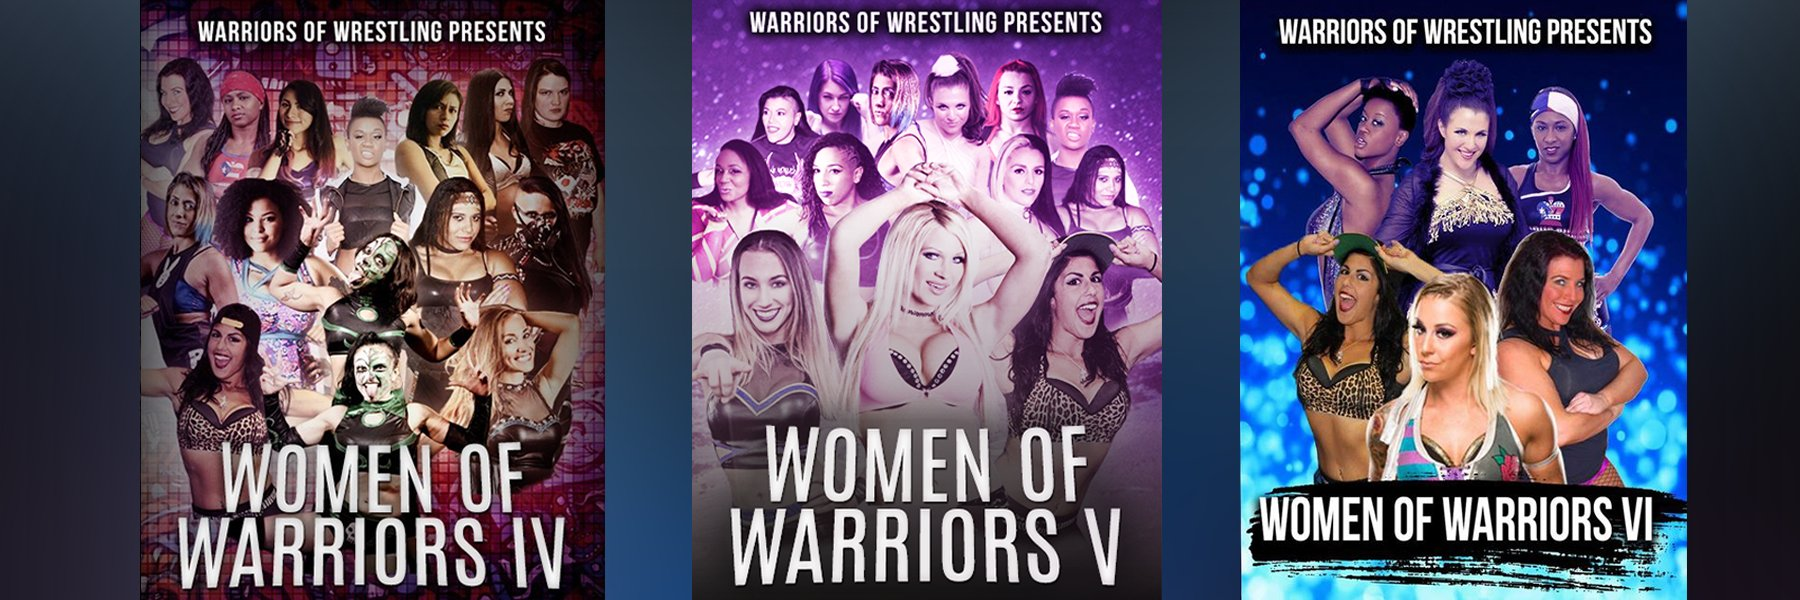 EXCLUSIVE: WOW Women of Warriors - Jordynne Grace, Nikki Addams, Holidead